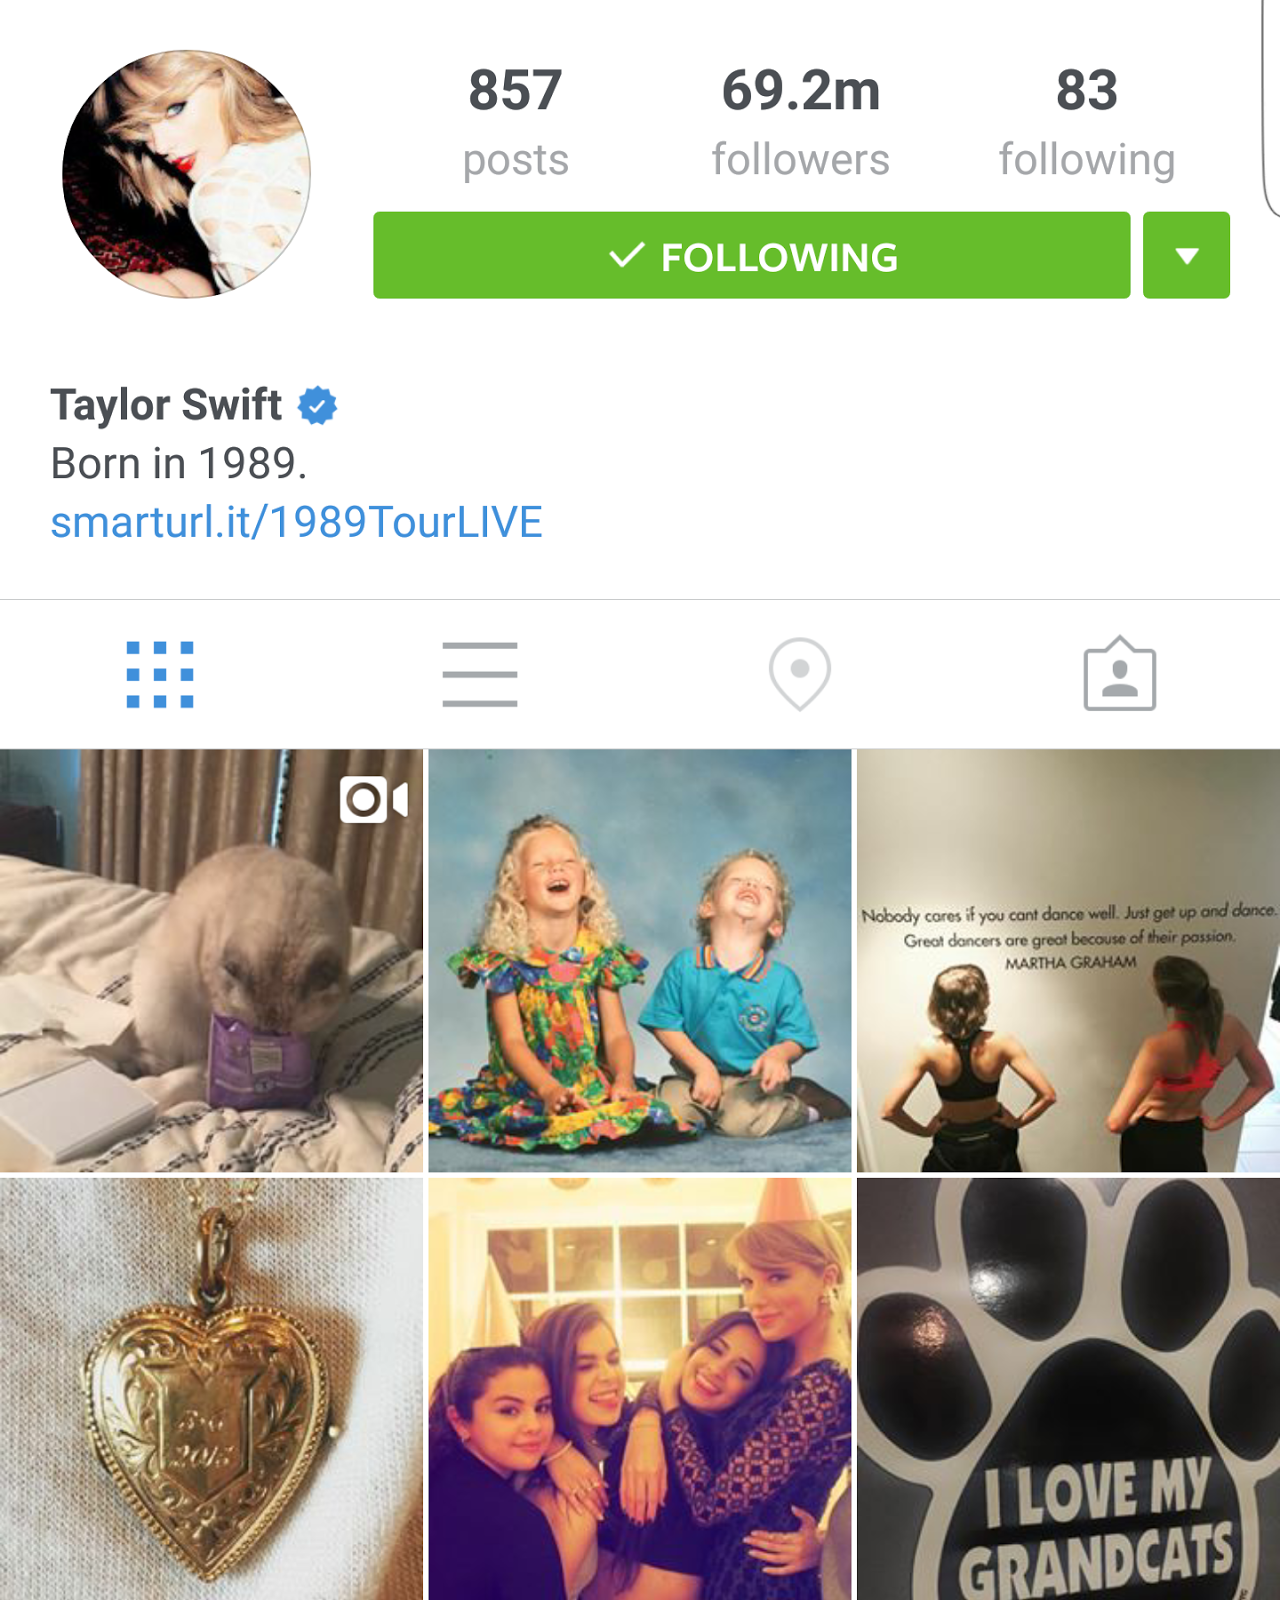 Attention Instagram Followers: Selena Gomez Now The Most Followed Person On Instagram